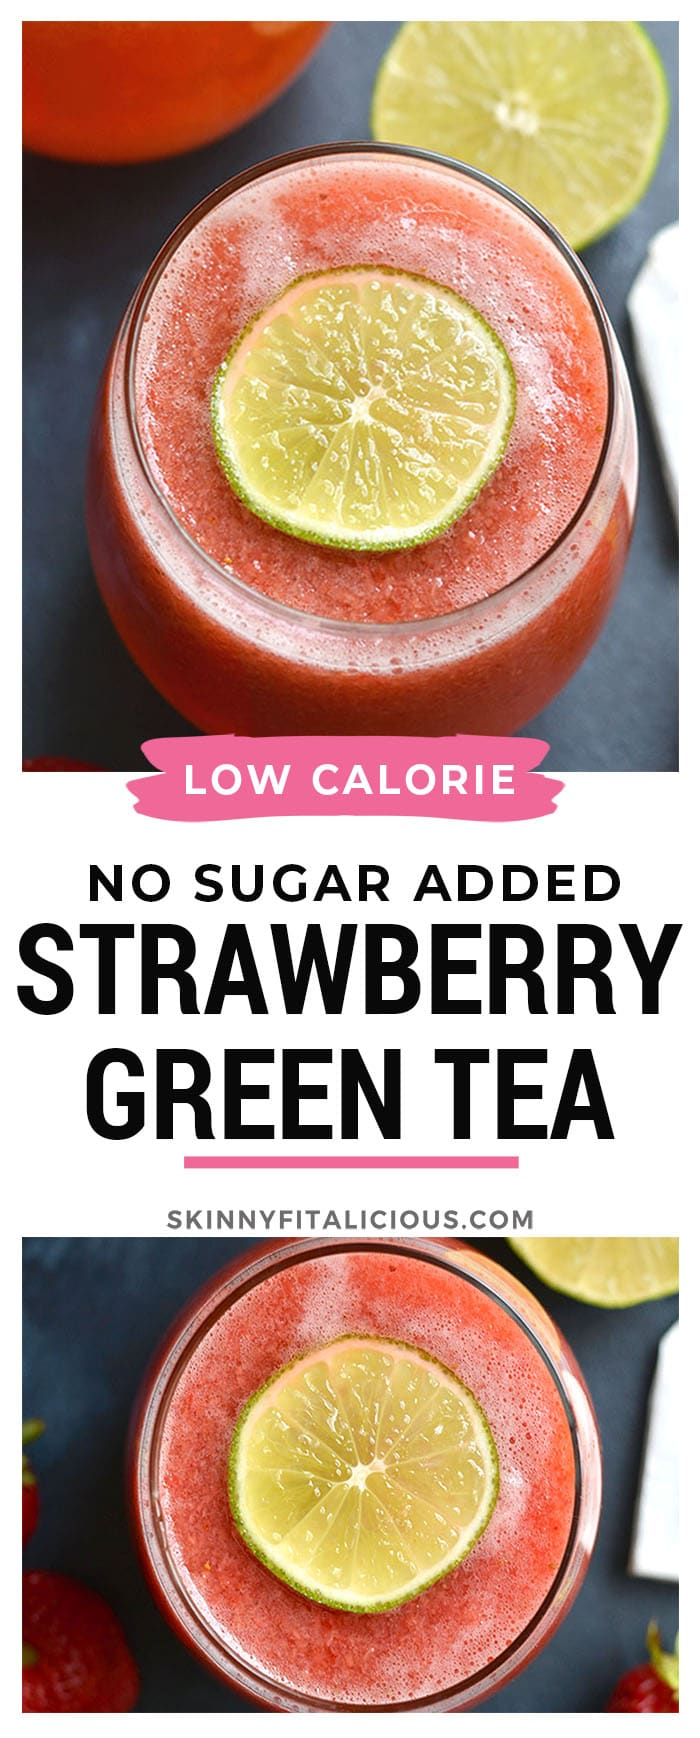 Boost your health with an antioxidant and Vitamin C rich Strawberry Green Tea! This fruit sweetened tea is cool, refreshing, and nourishing. Perfect for a hot day. Vegan + Paleo + Gluten Free + Low Calorie